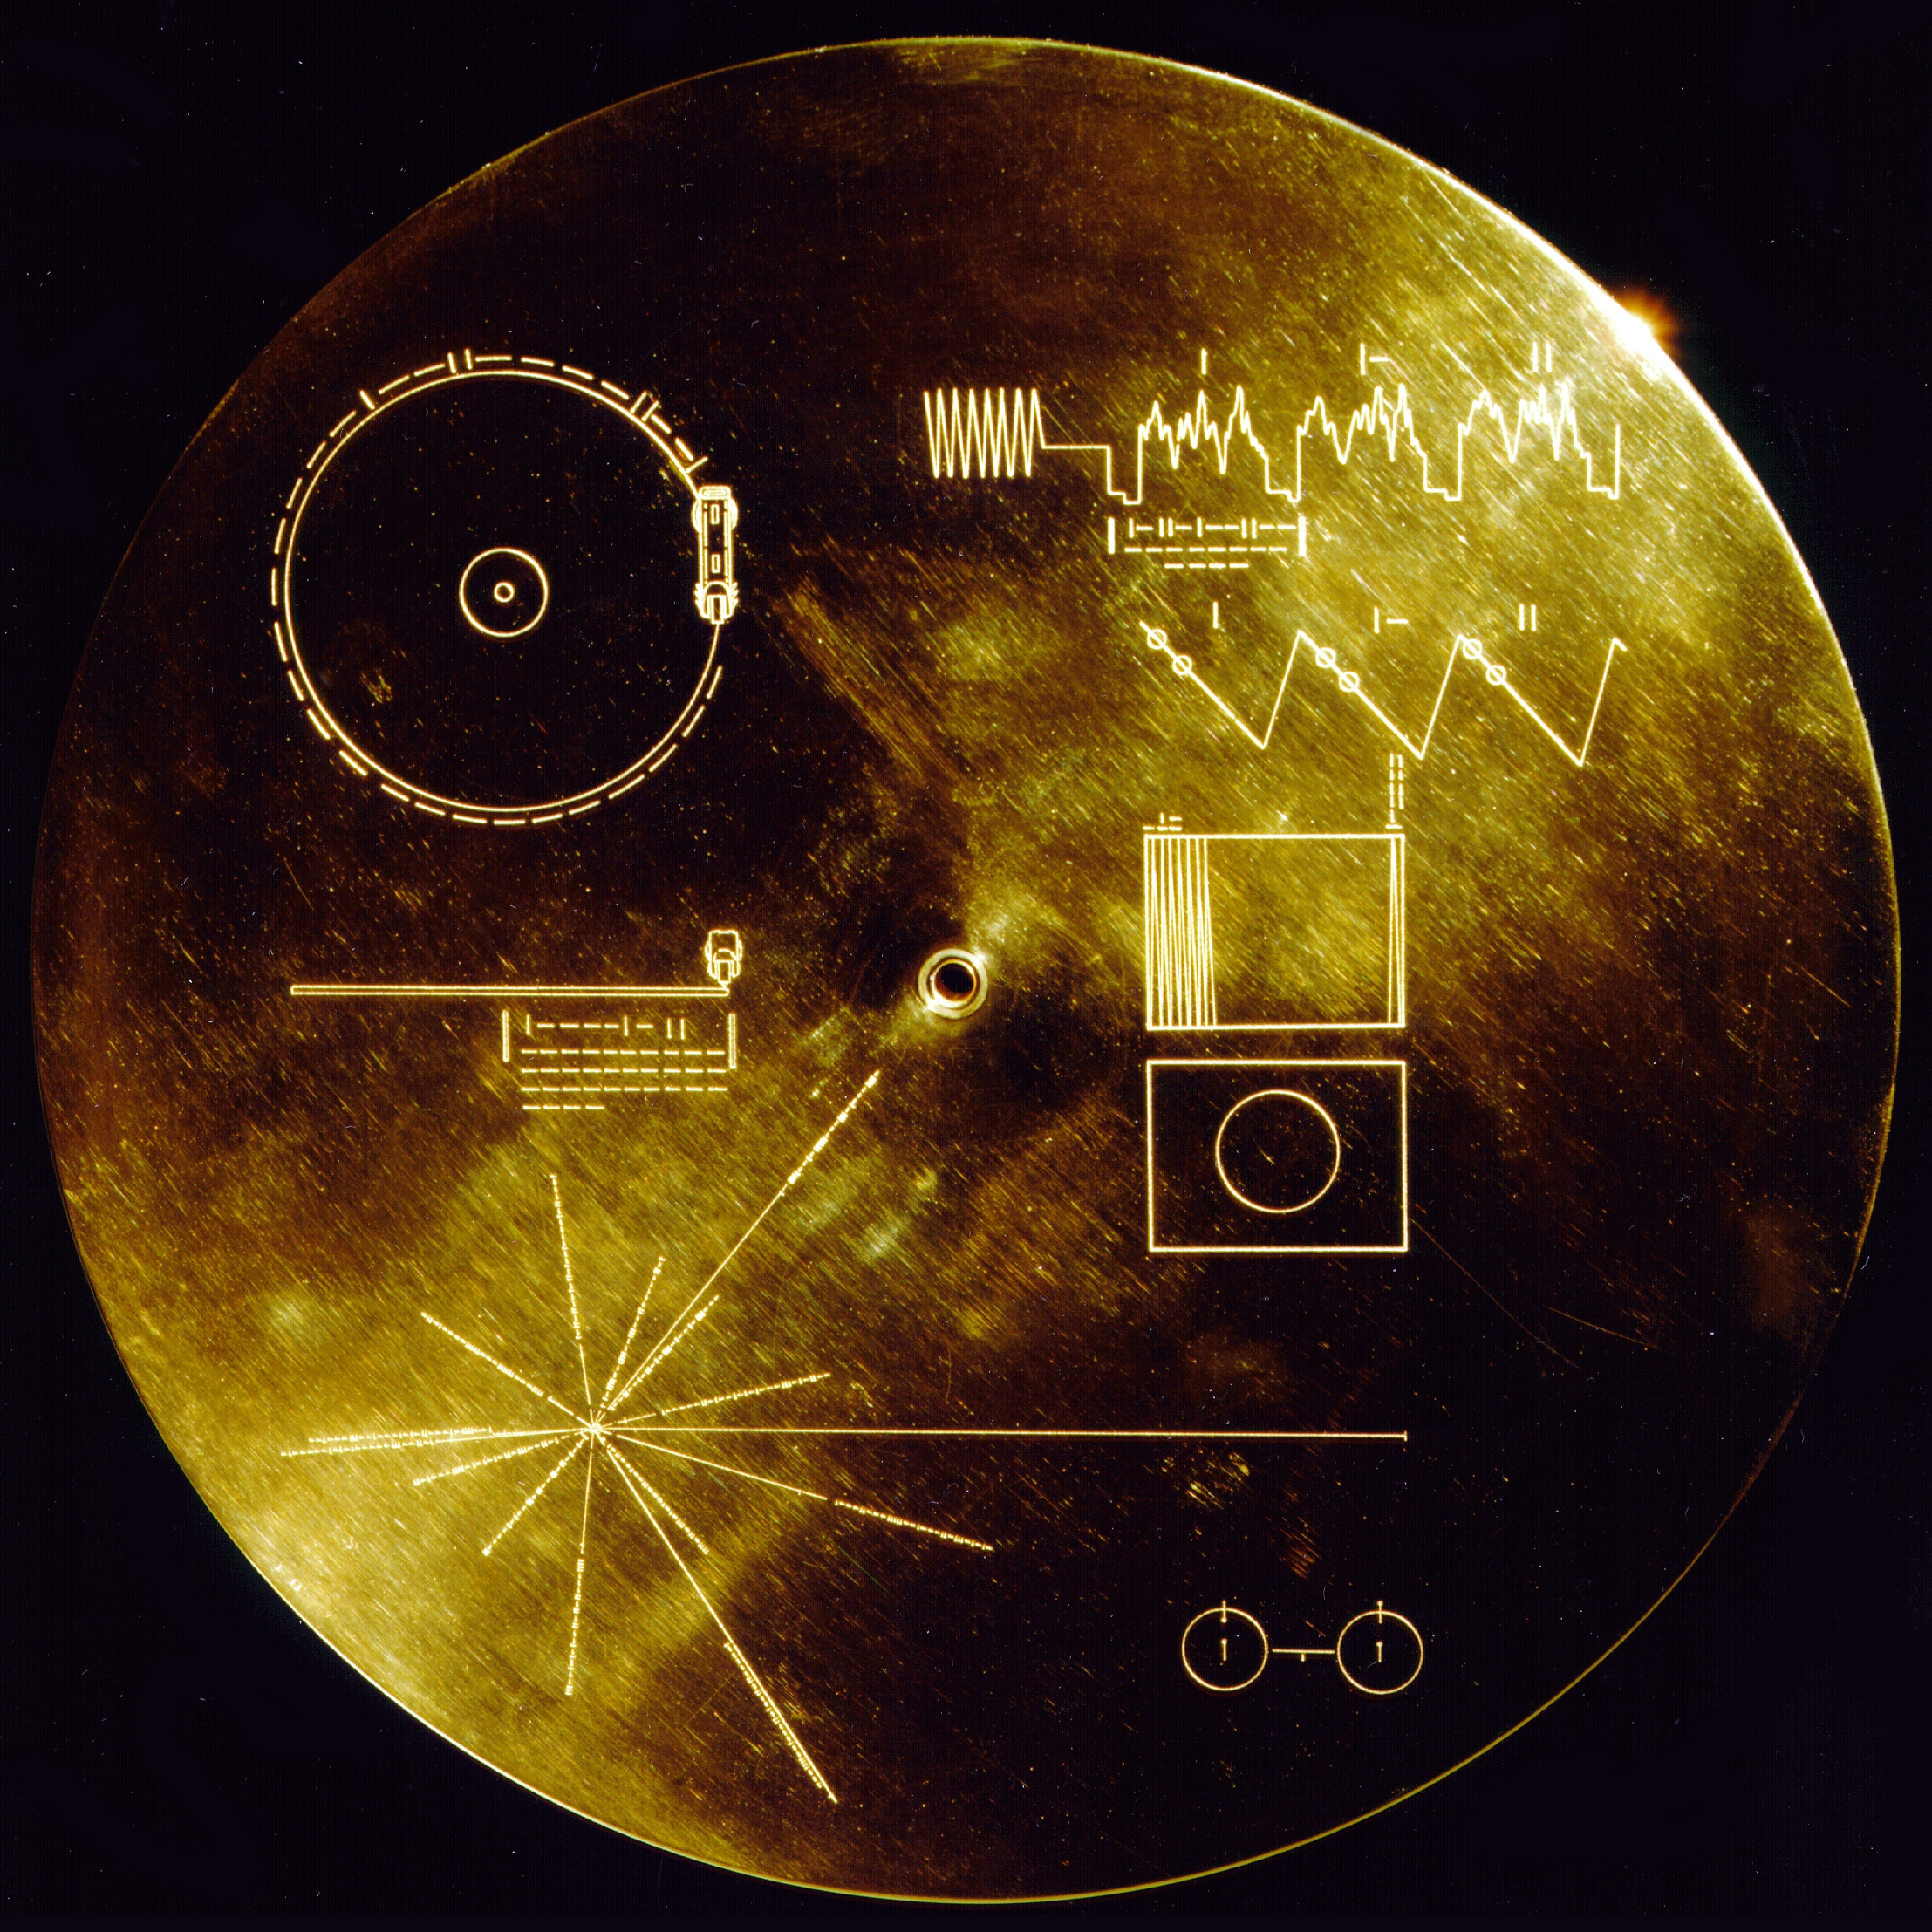 The_Sounds_of_Earth_Record_Cover_- VOYAGER 1 and 2.jpg